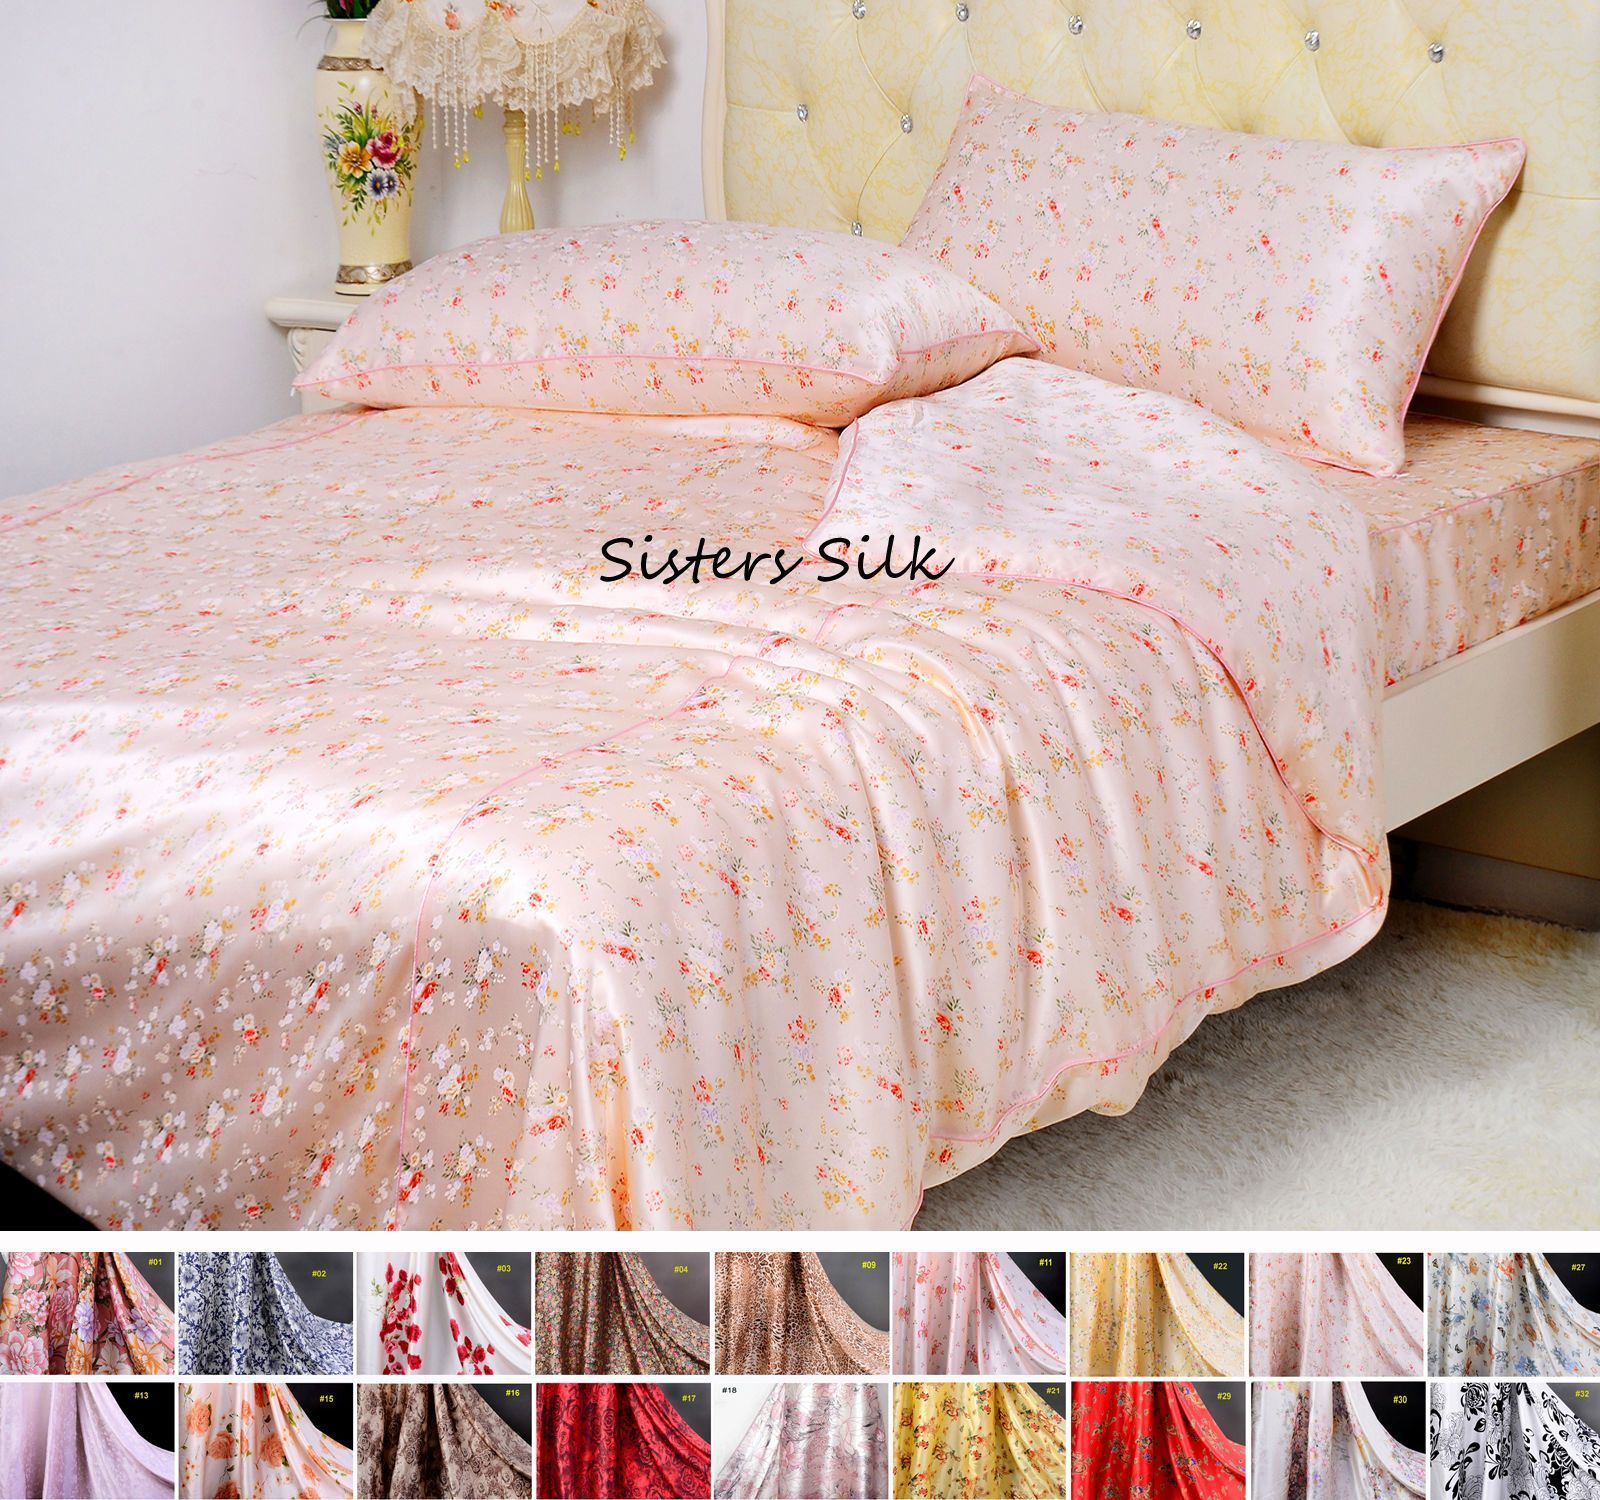 5 Pcs 16Mm Printed Silk Duvet Cover Flat Sheet Fitted